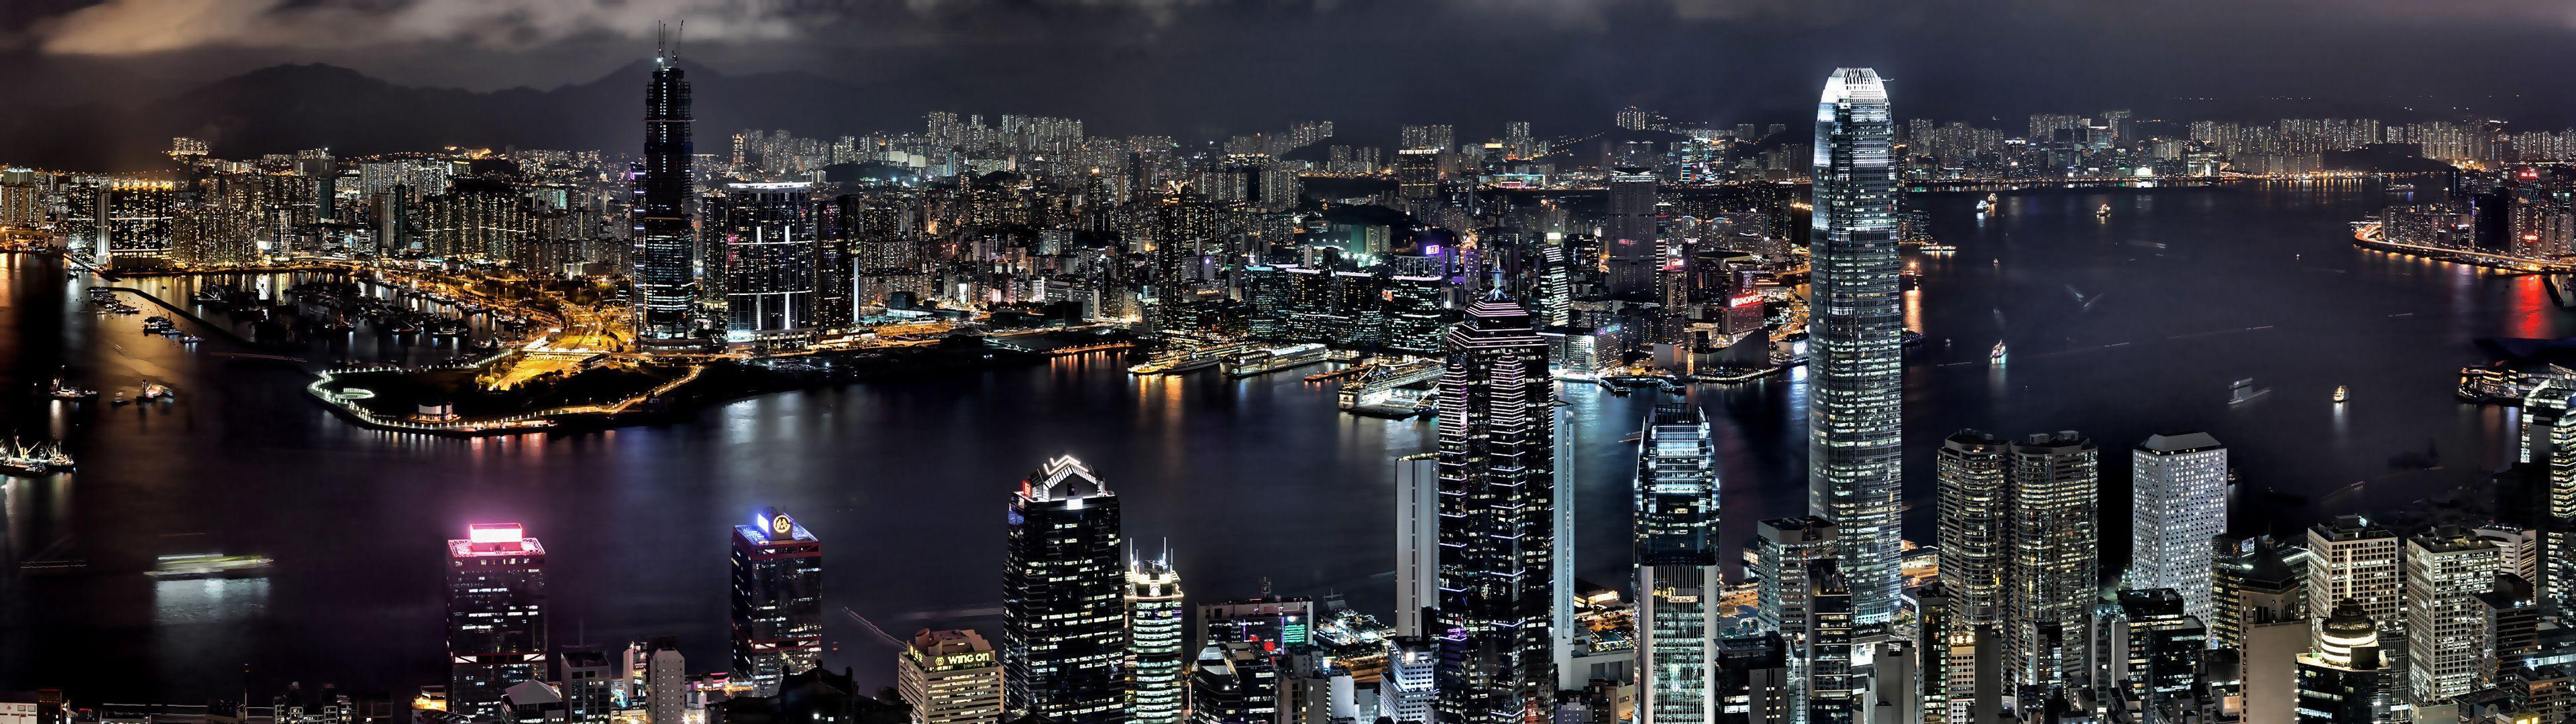 Cityscapes night buildings Hong Kong wallpapers